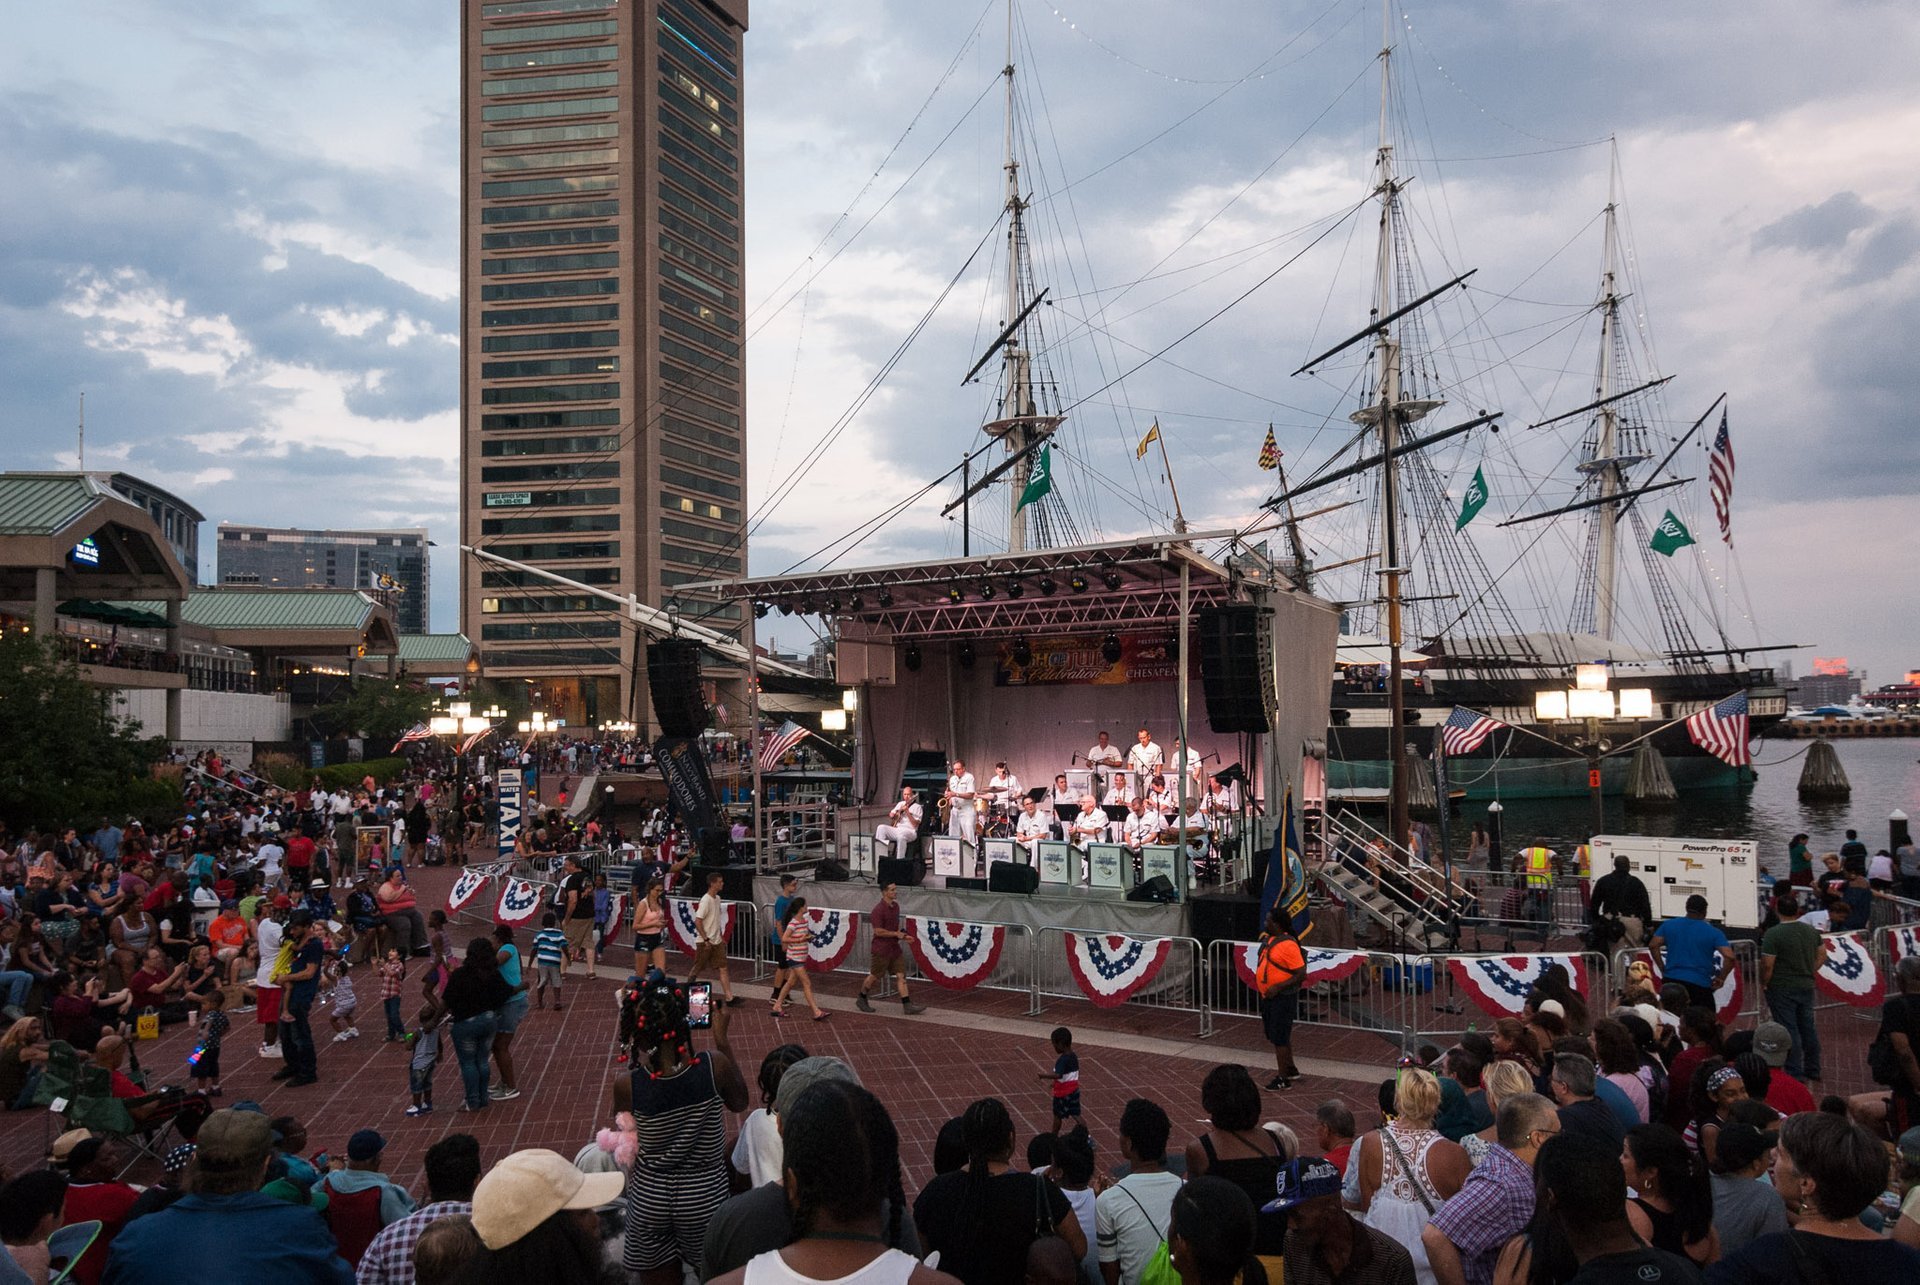 Independence Day festivities in Baltimore 2020